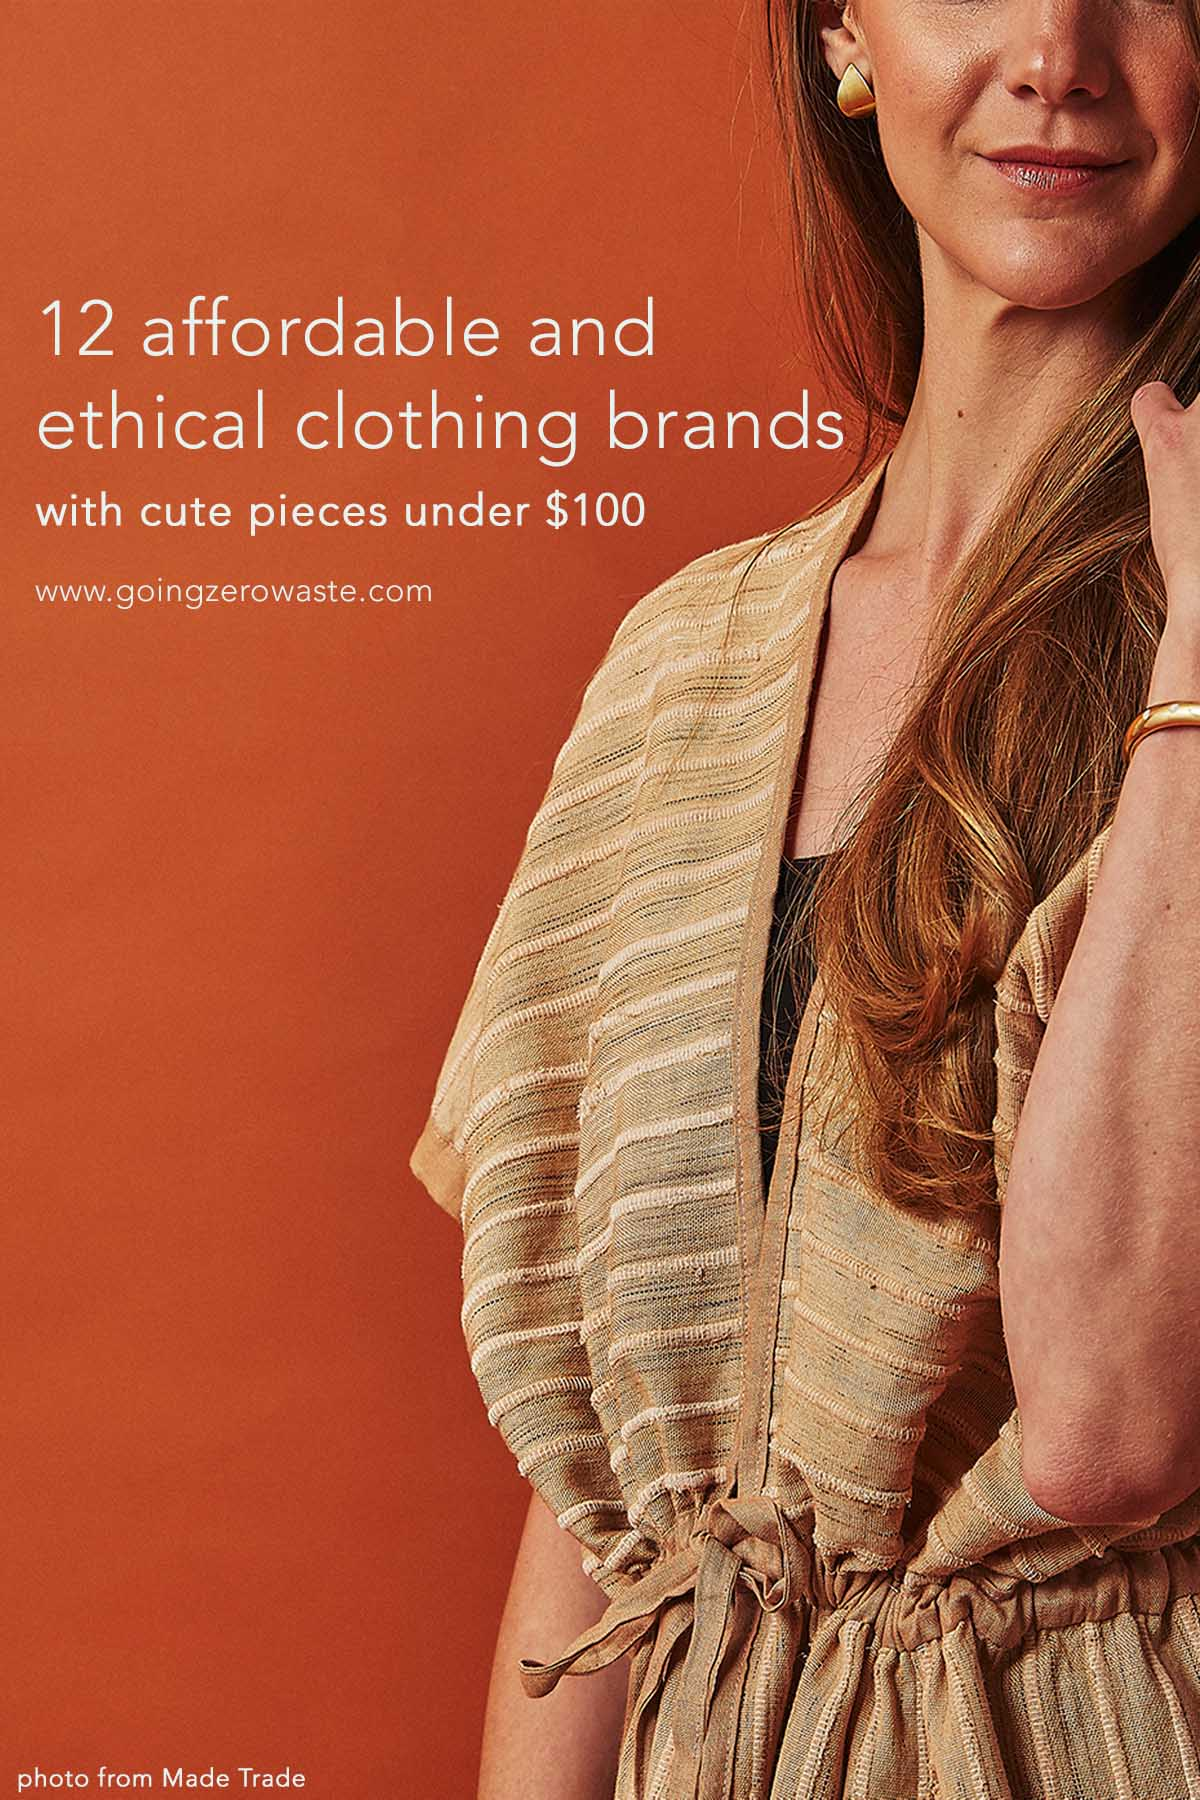 12 affordable, ethical clothing brands that have cute pieces under $100 from www.goingzerowaste.com #ethicalfashion #sustainablefashion #ecofriendly #zerowaste